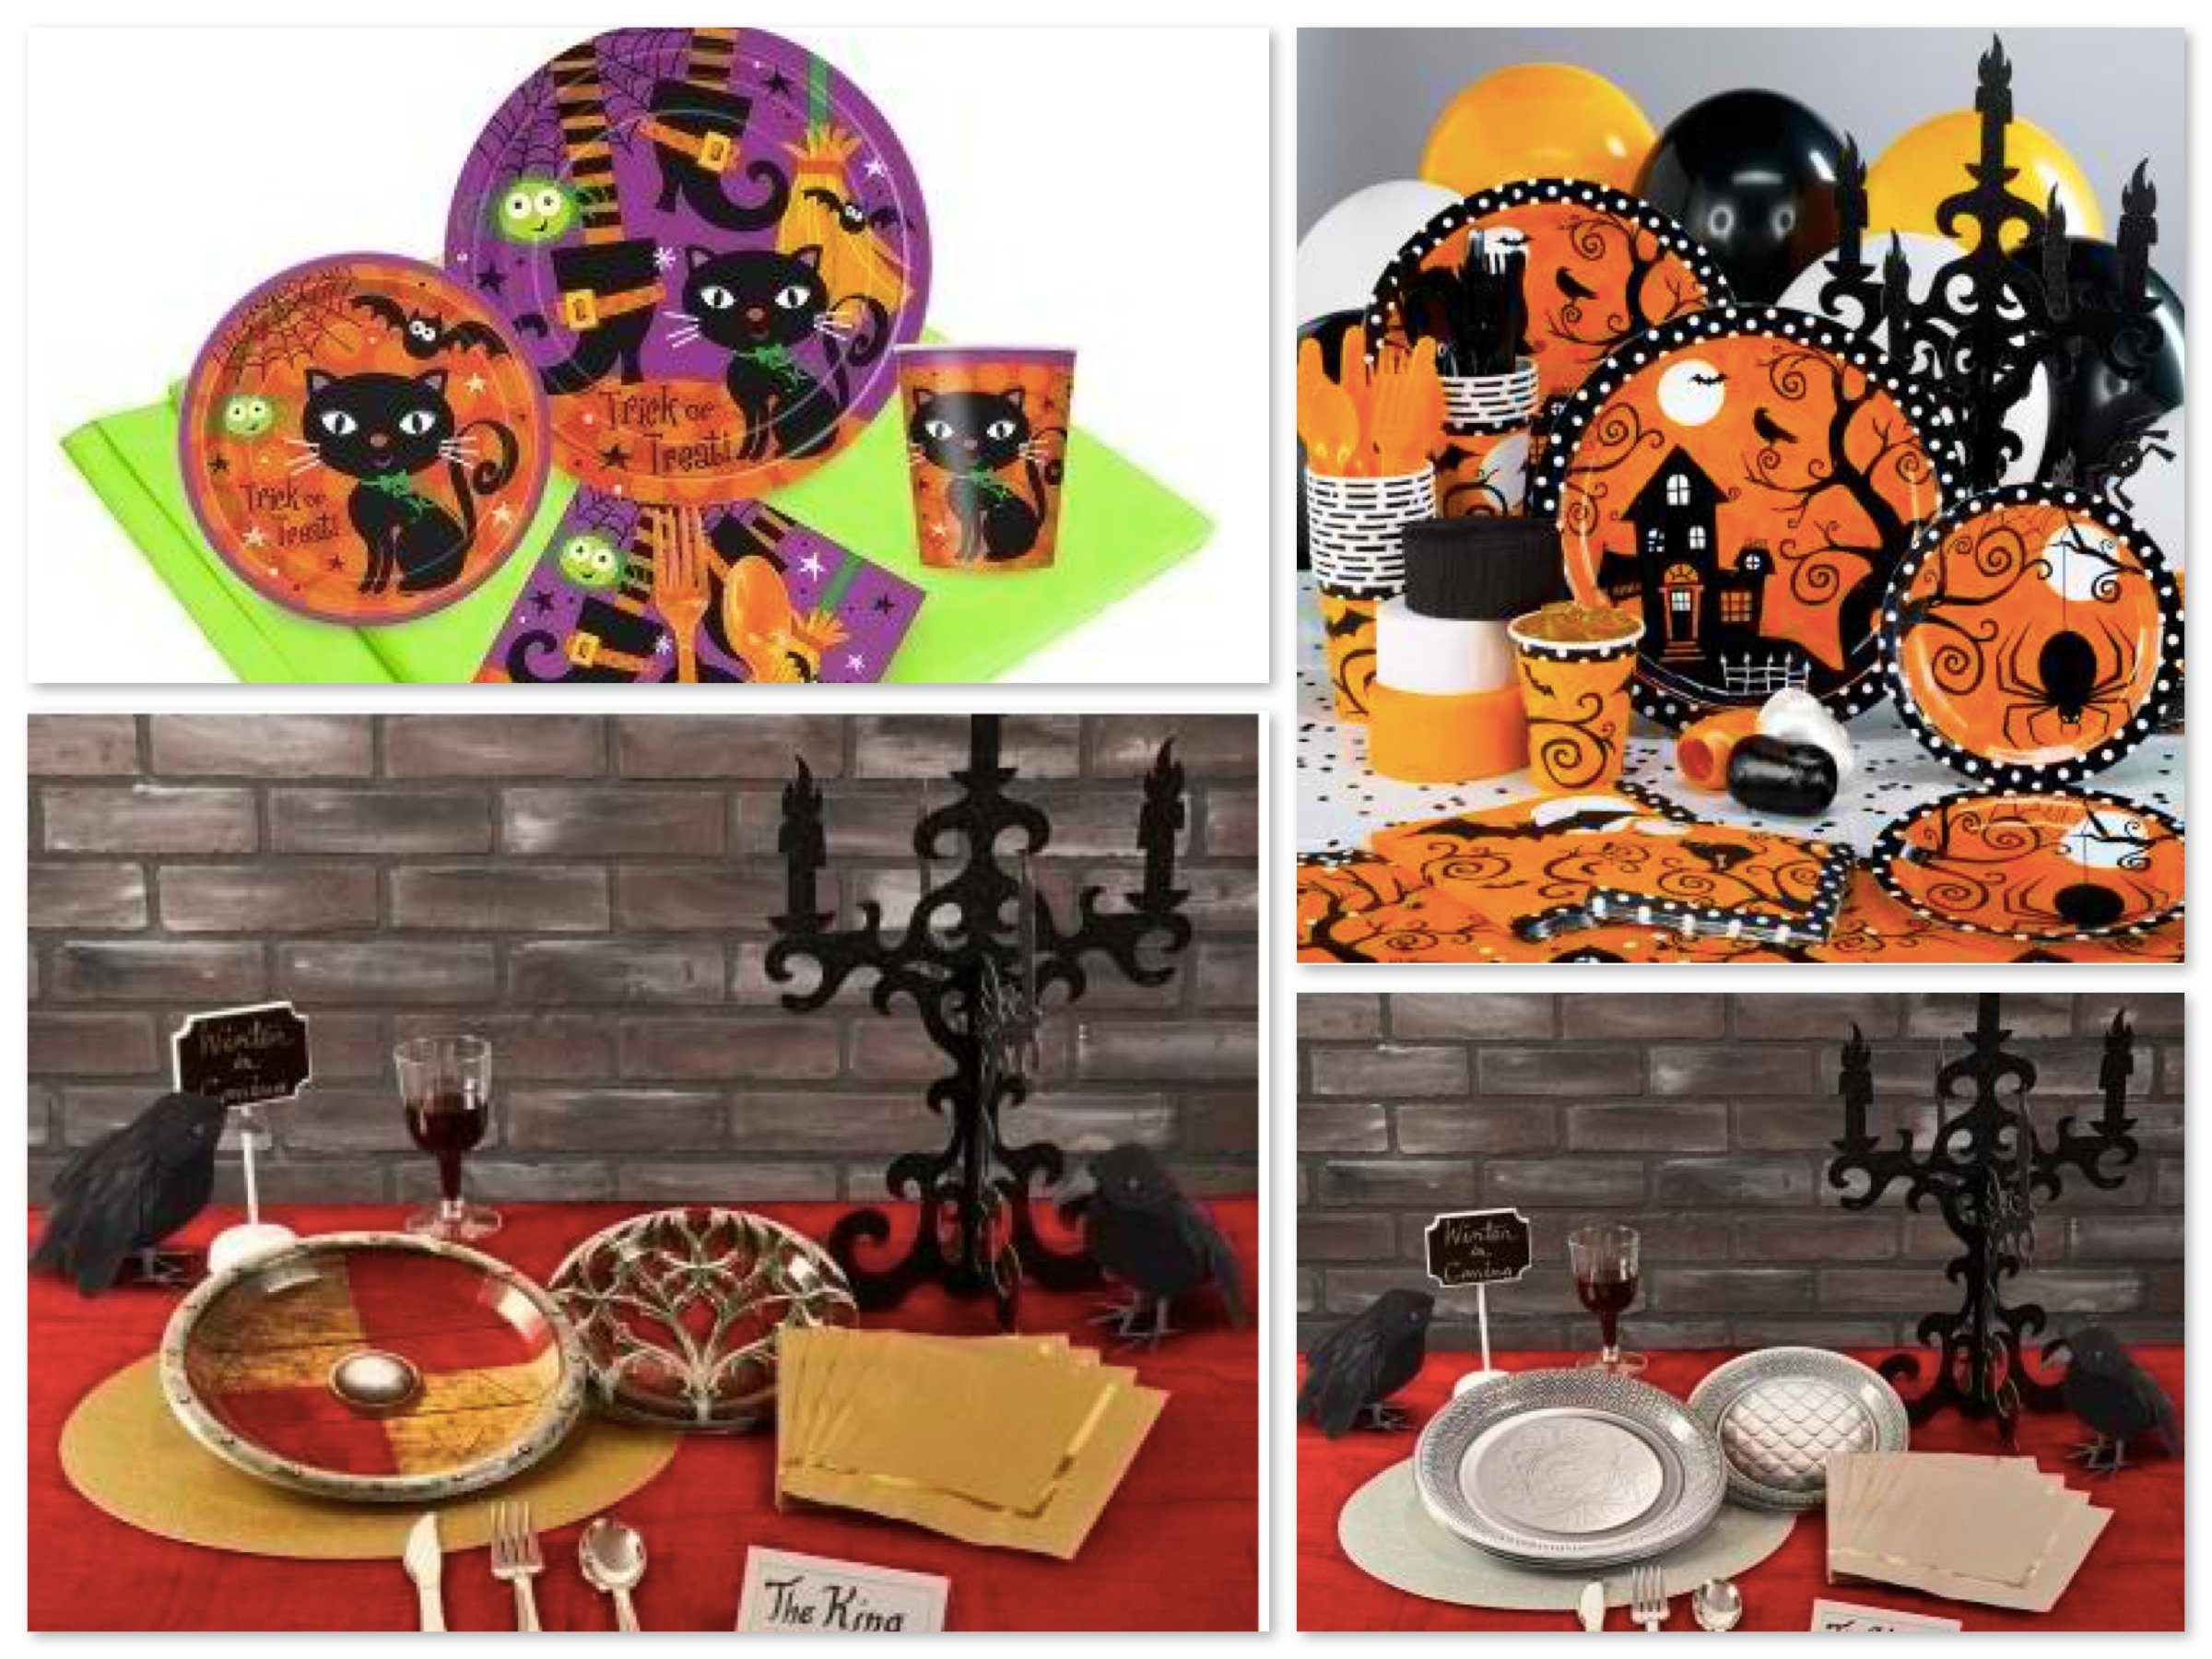 Halloween party ideas by celebrate express halloween for Halloween party favor ideas